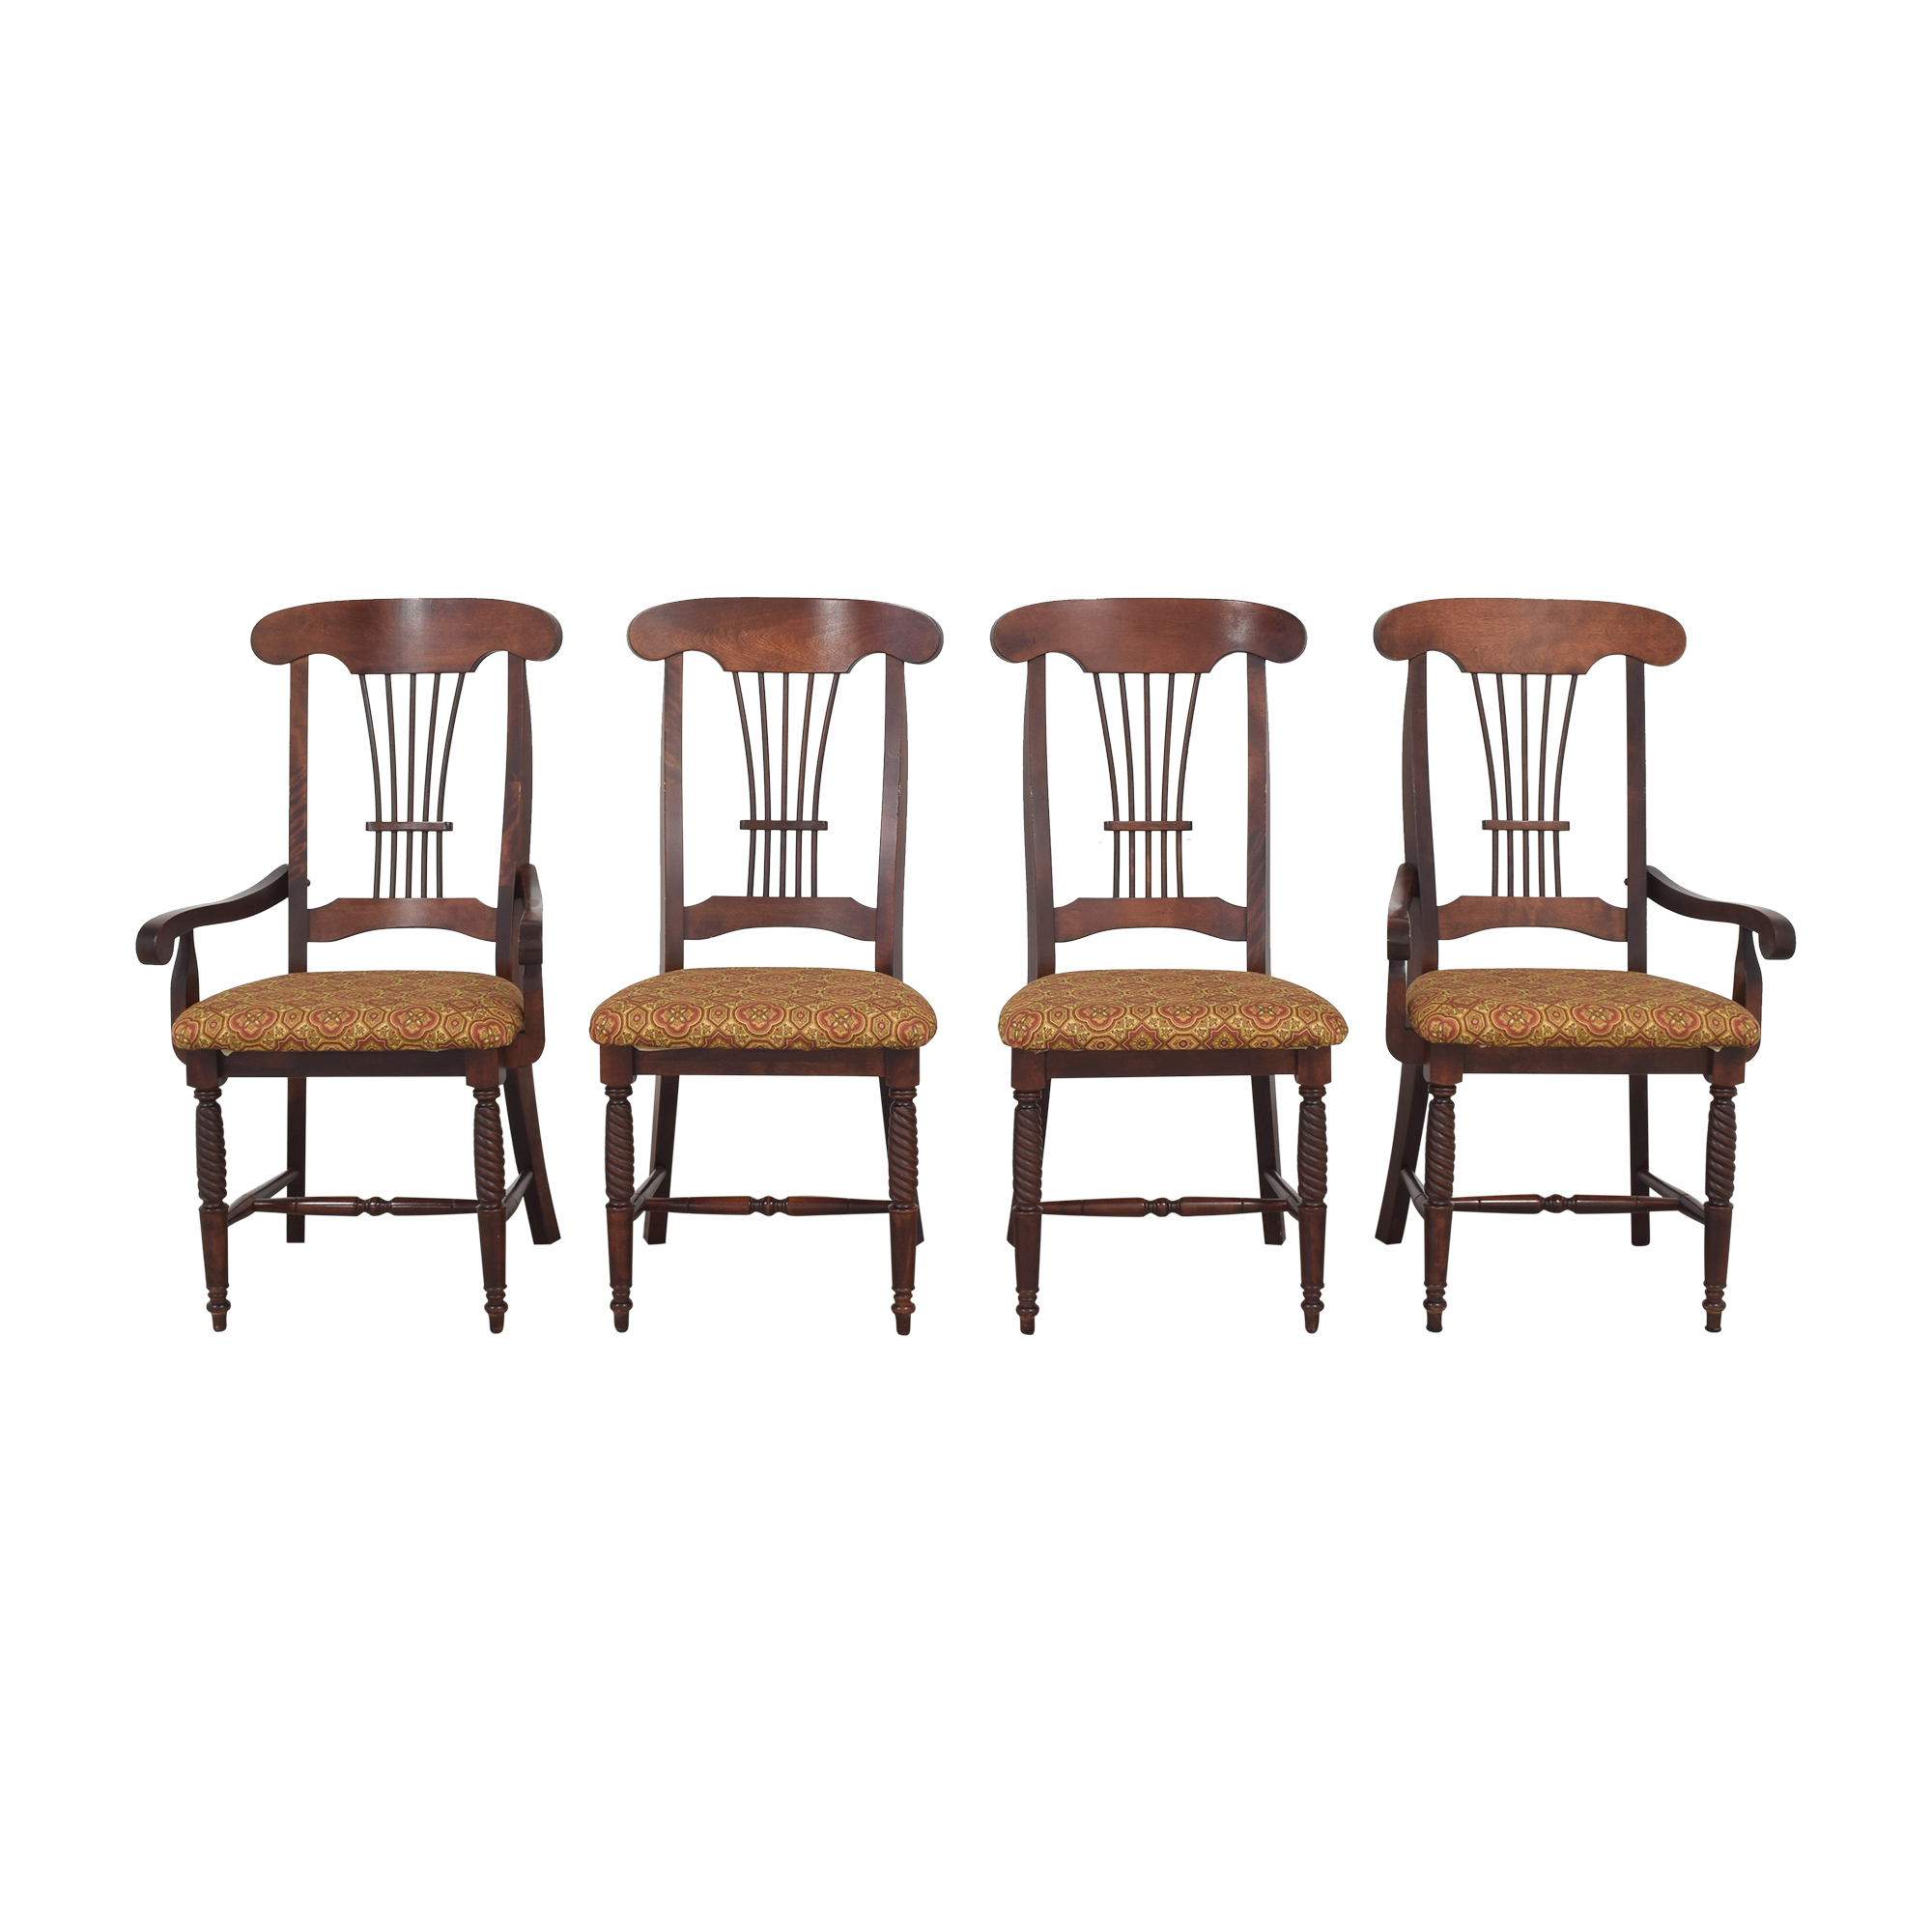 Canadel Canadel Upholstered Seat Dining Chairs price